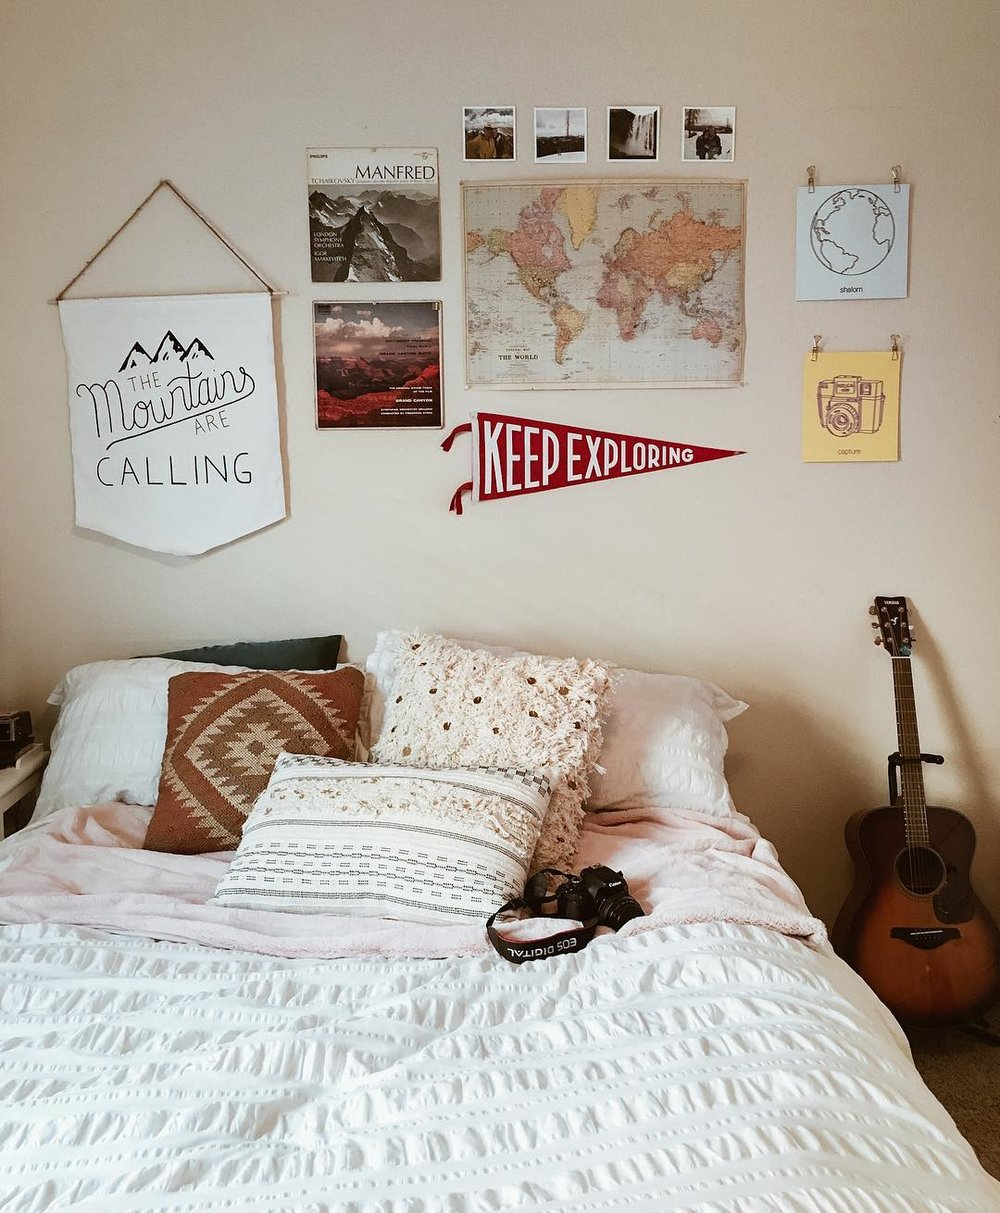 The perfect addition to an adventure-decorated wall is our classic pennant, @kaleynbell's got that right